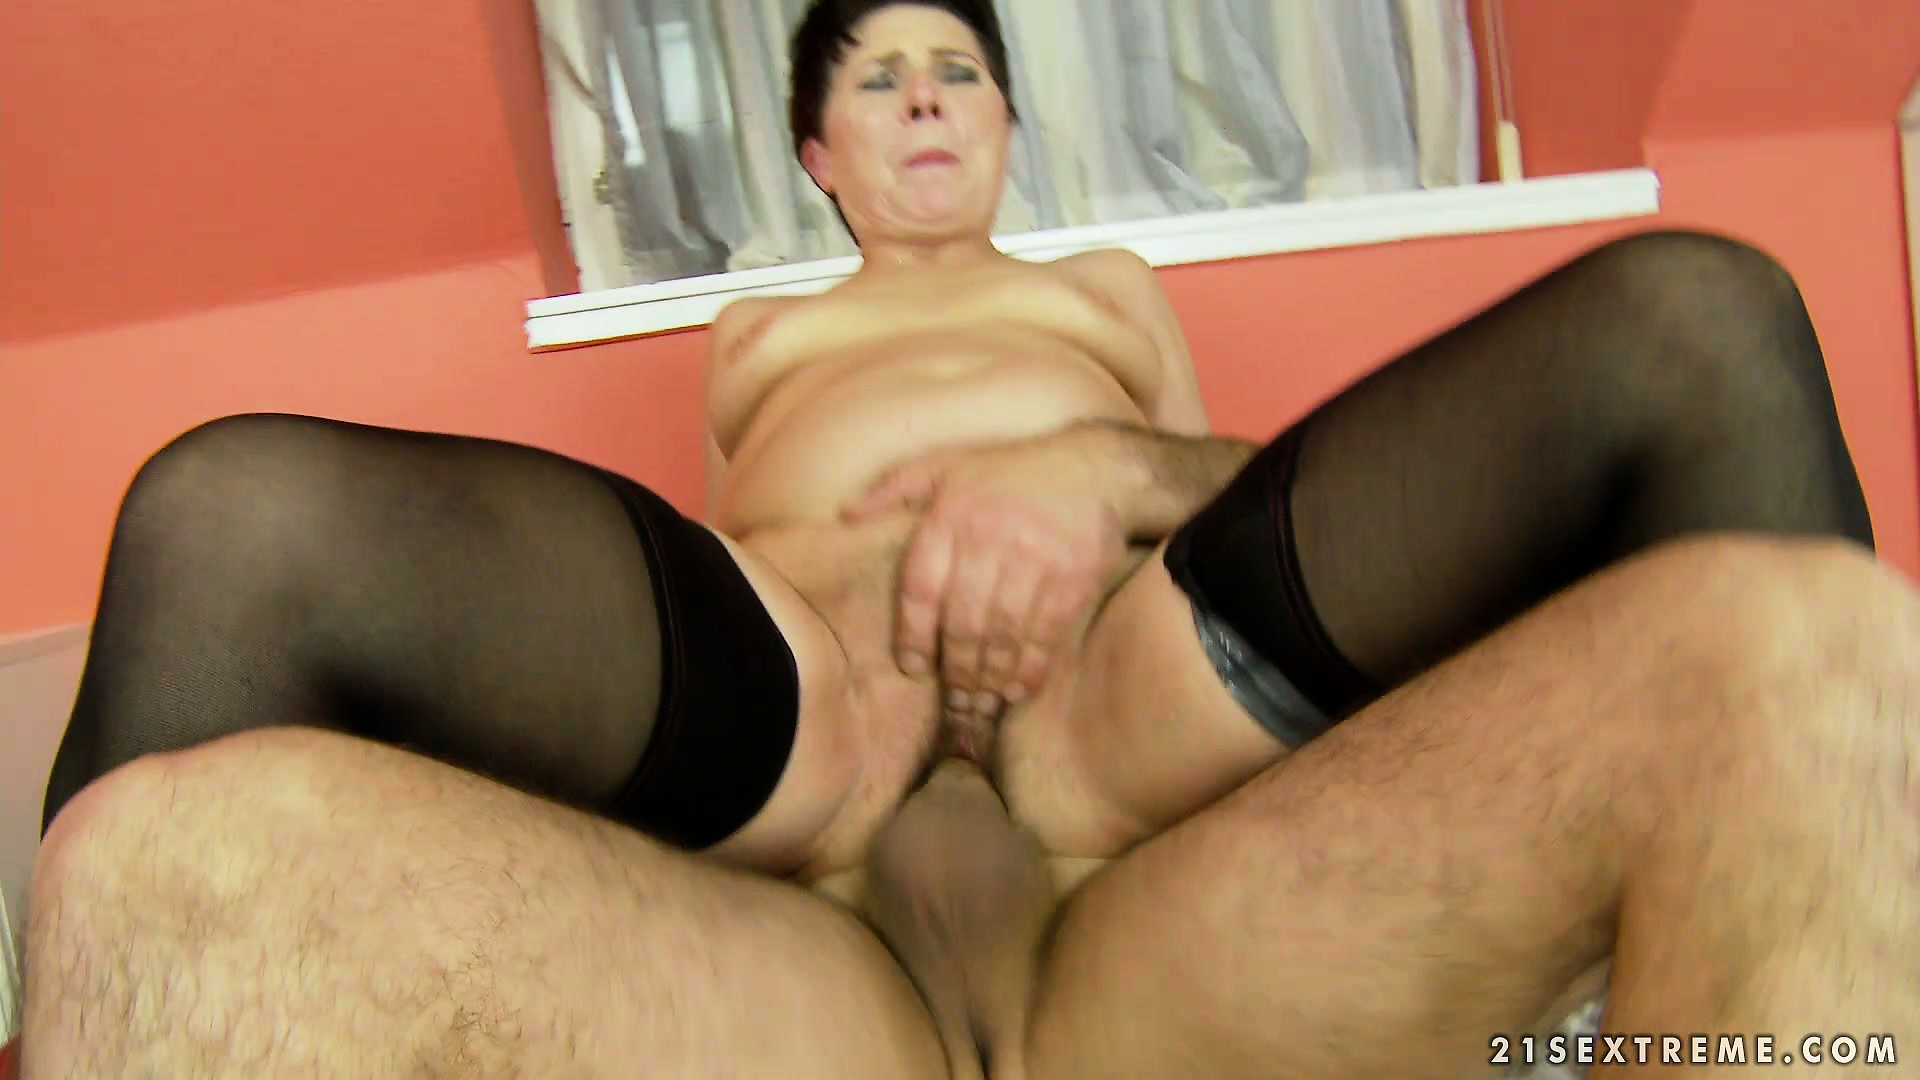 Porno Video of Sort-haired Hoochie In Stockings Rides On A Young Guy's Cock